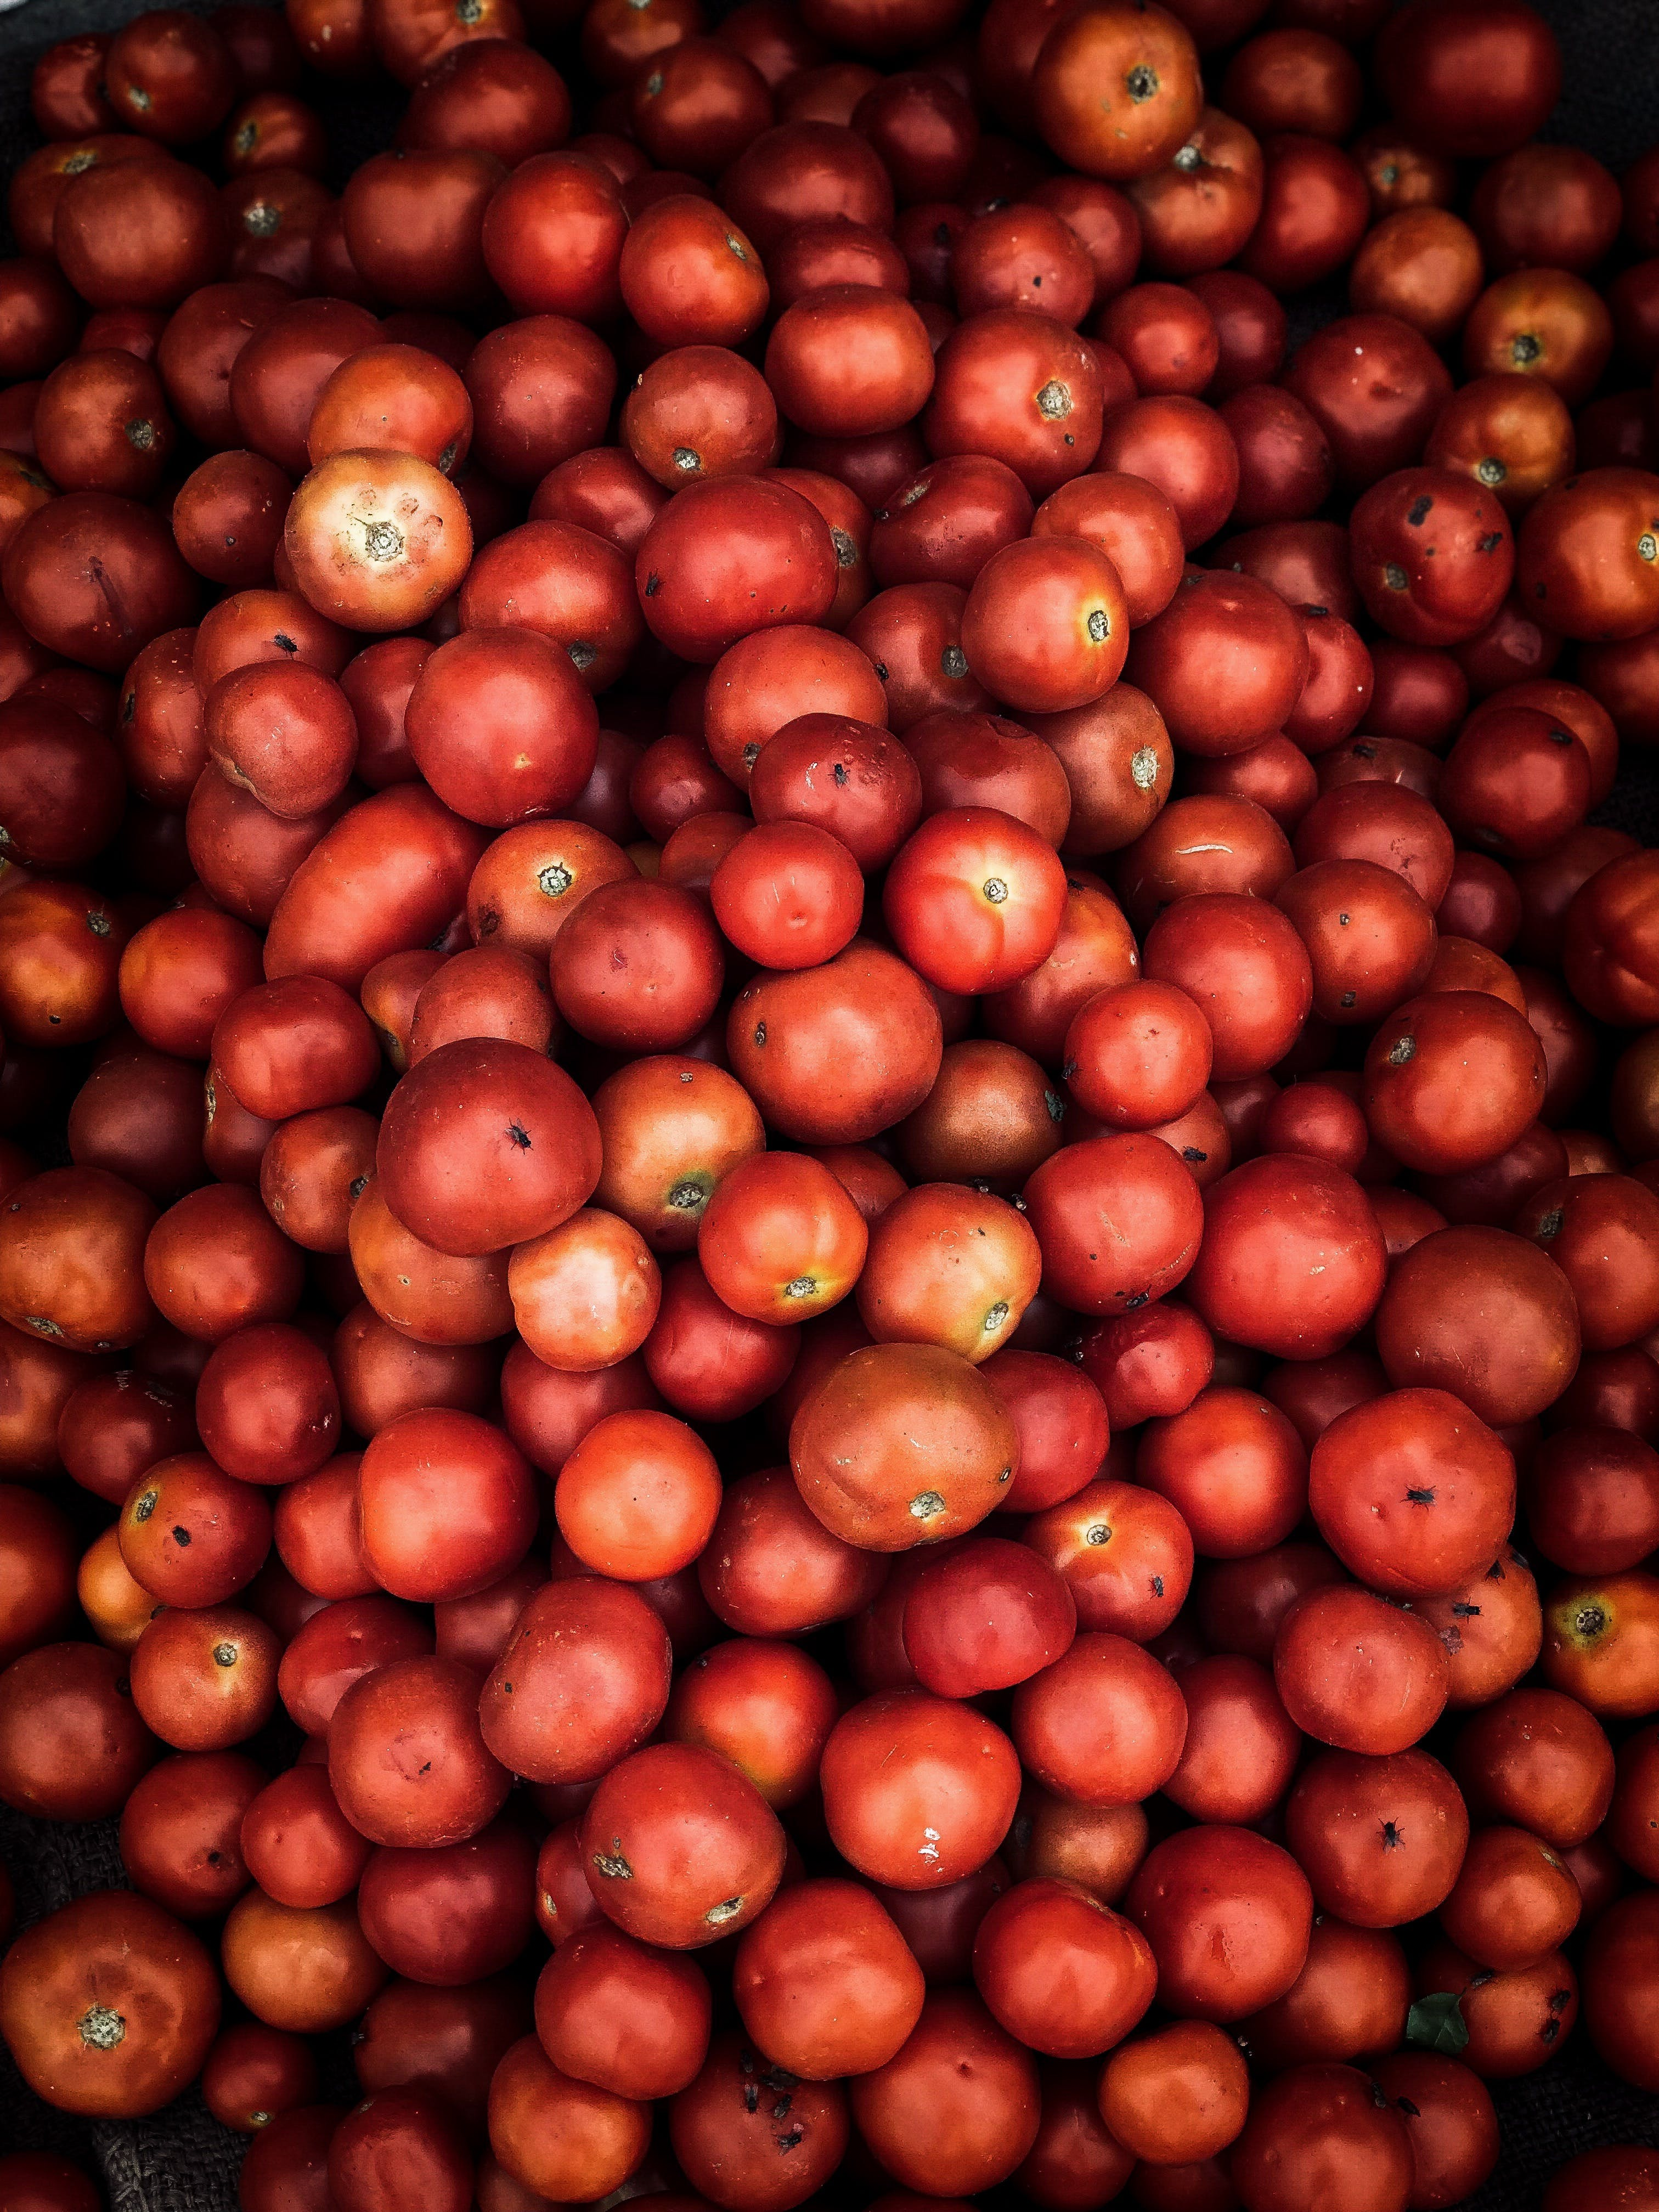 Red Round Fruits Lot